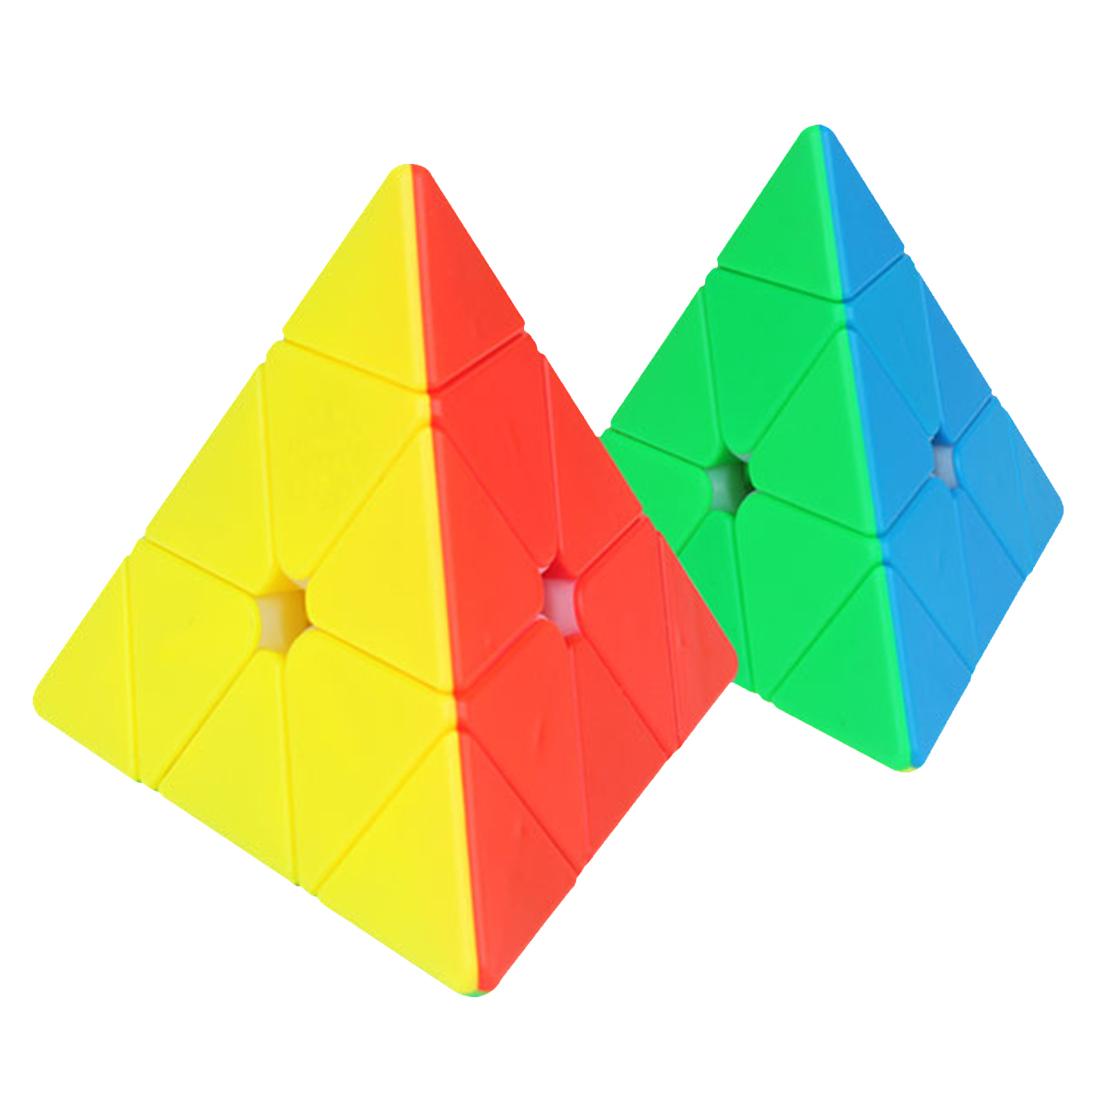 Yuxin Heiqilin Pyramid Magic Cube Puzzle Toy For Brain Training  - Colorful